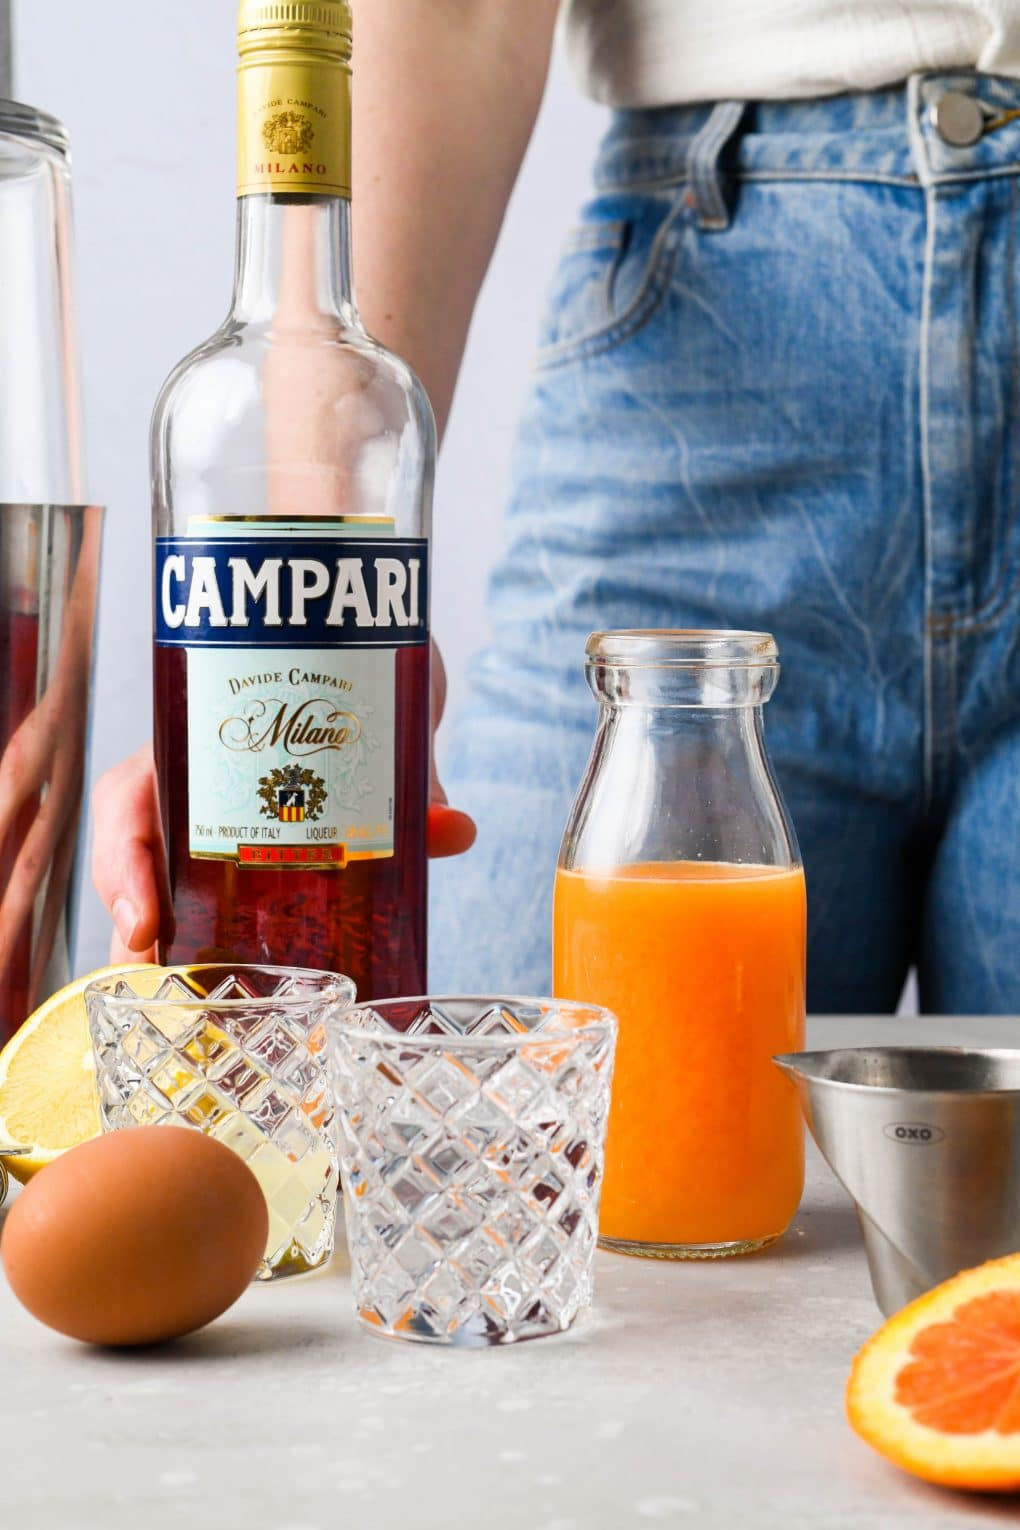 Straight on image of the ingredients for an orange Campari vodka sour cocktail in various glassware, with a woman standing behind the ingredients and her hand on a bottle of campari.